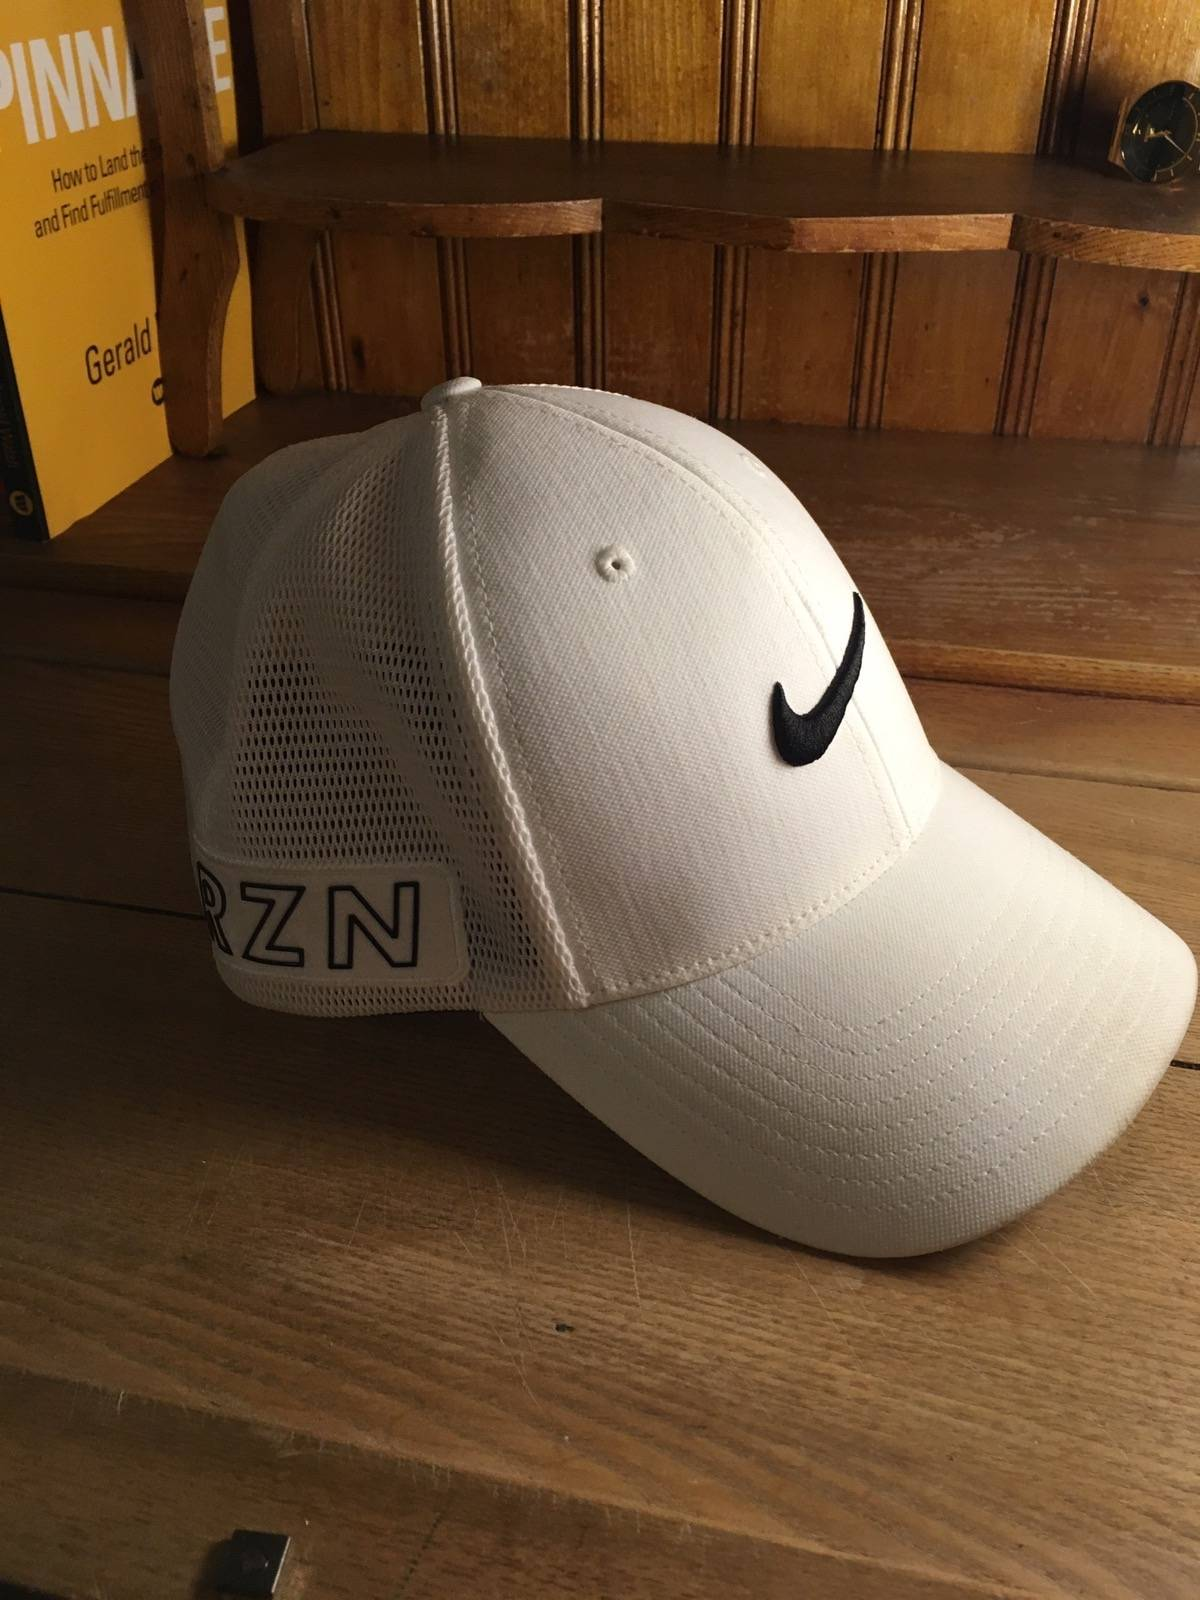 Nike Nike Golf Hat - RZN - VAPOR Size one size - Hats for Sale - Grailed 13595b72d808